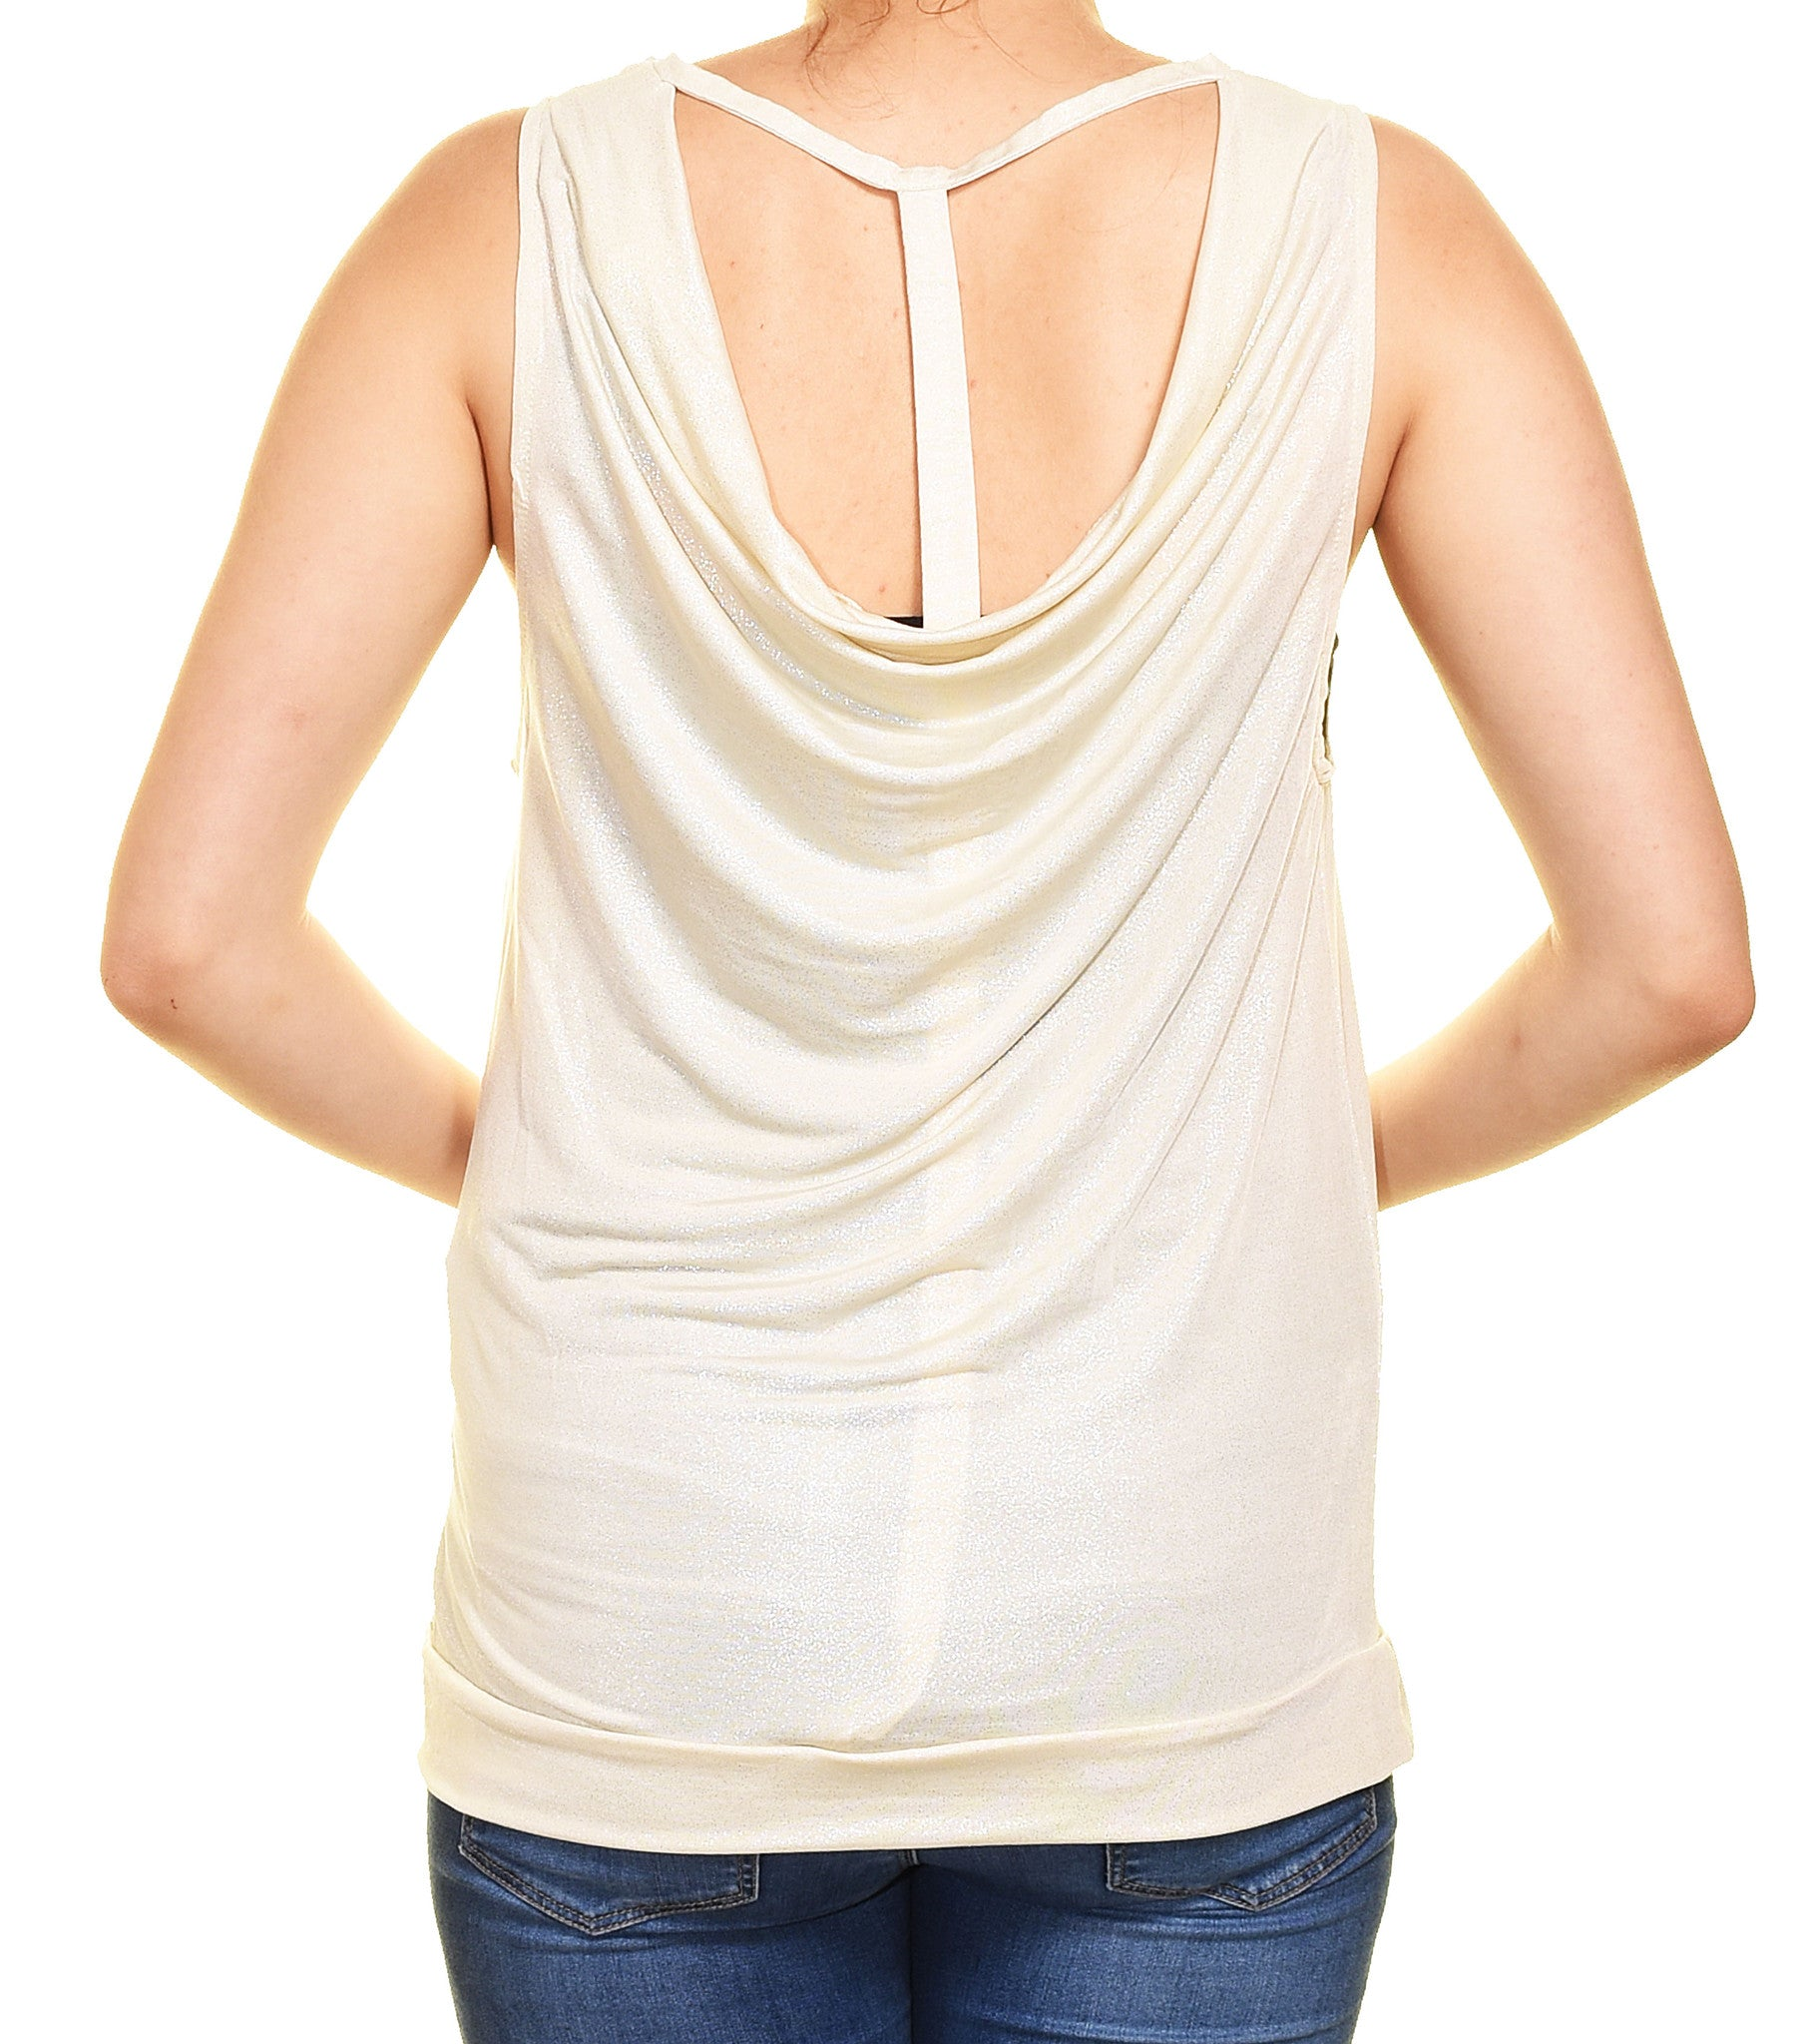 Banana USA Sexy Shimmer Club Tank (Ivory Beige Gold),Shirts,Banana USA - Discount Divas